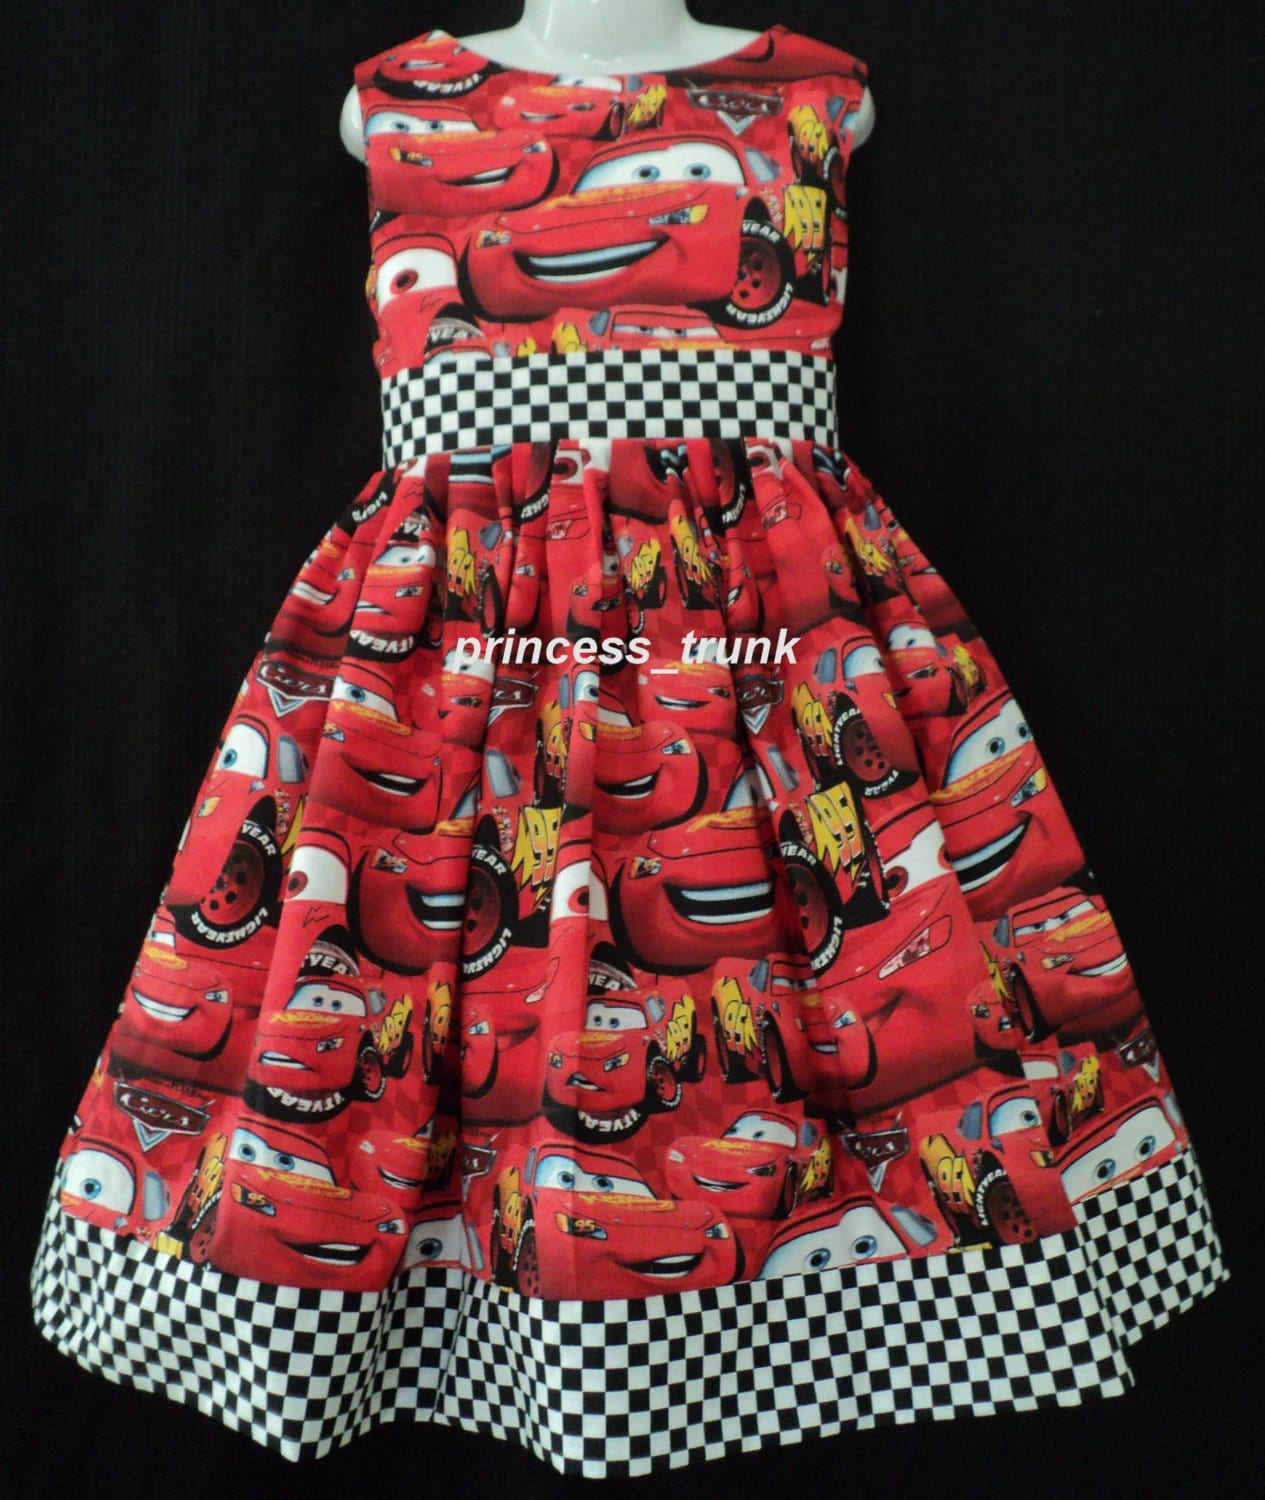 NEW Handmade VHTF Disney Pixar Red Mcqueen Cars Dress Custom Sz 12M-14yrs